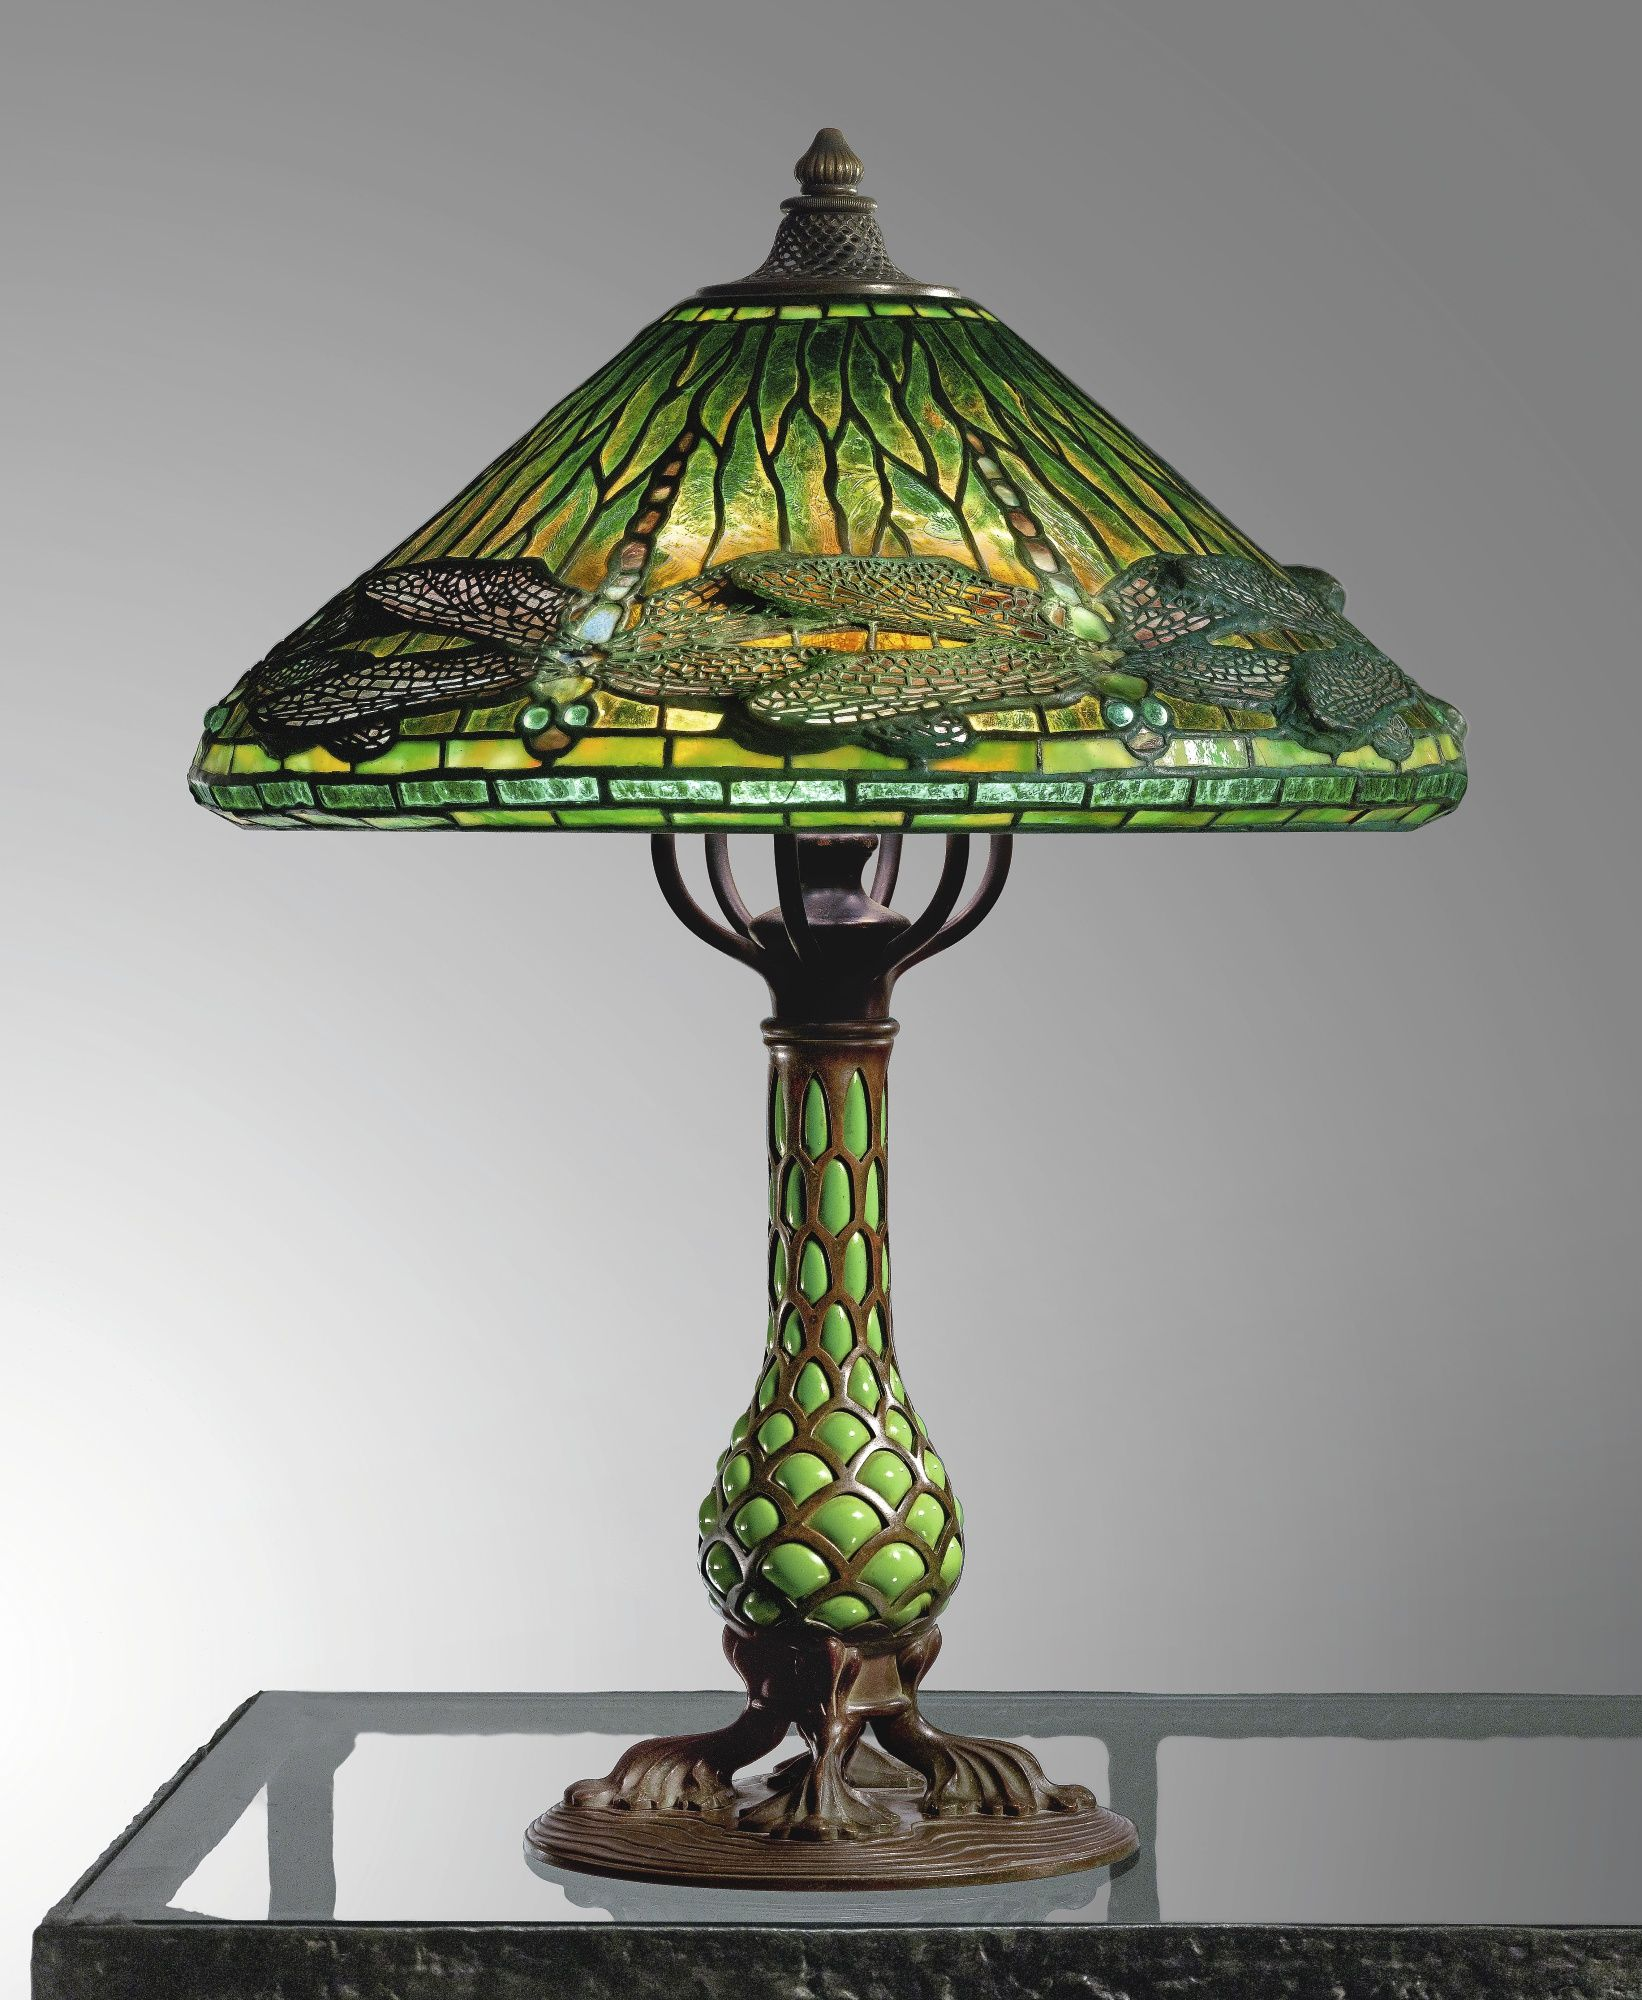 Tiffany Studios Dragonfly Table Lamp With A Rare Reticulated